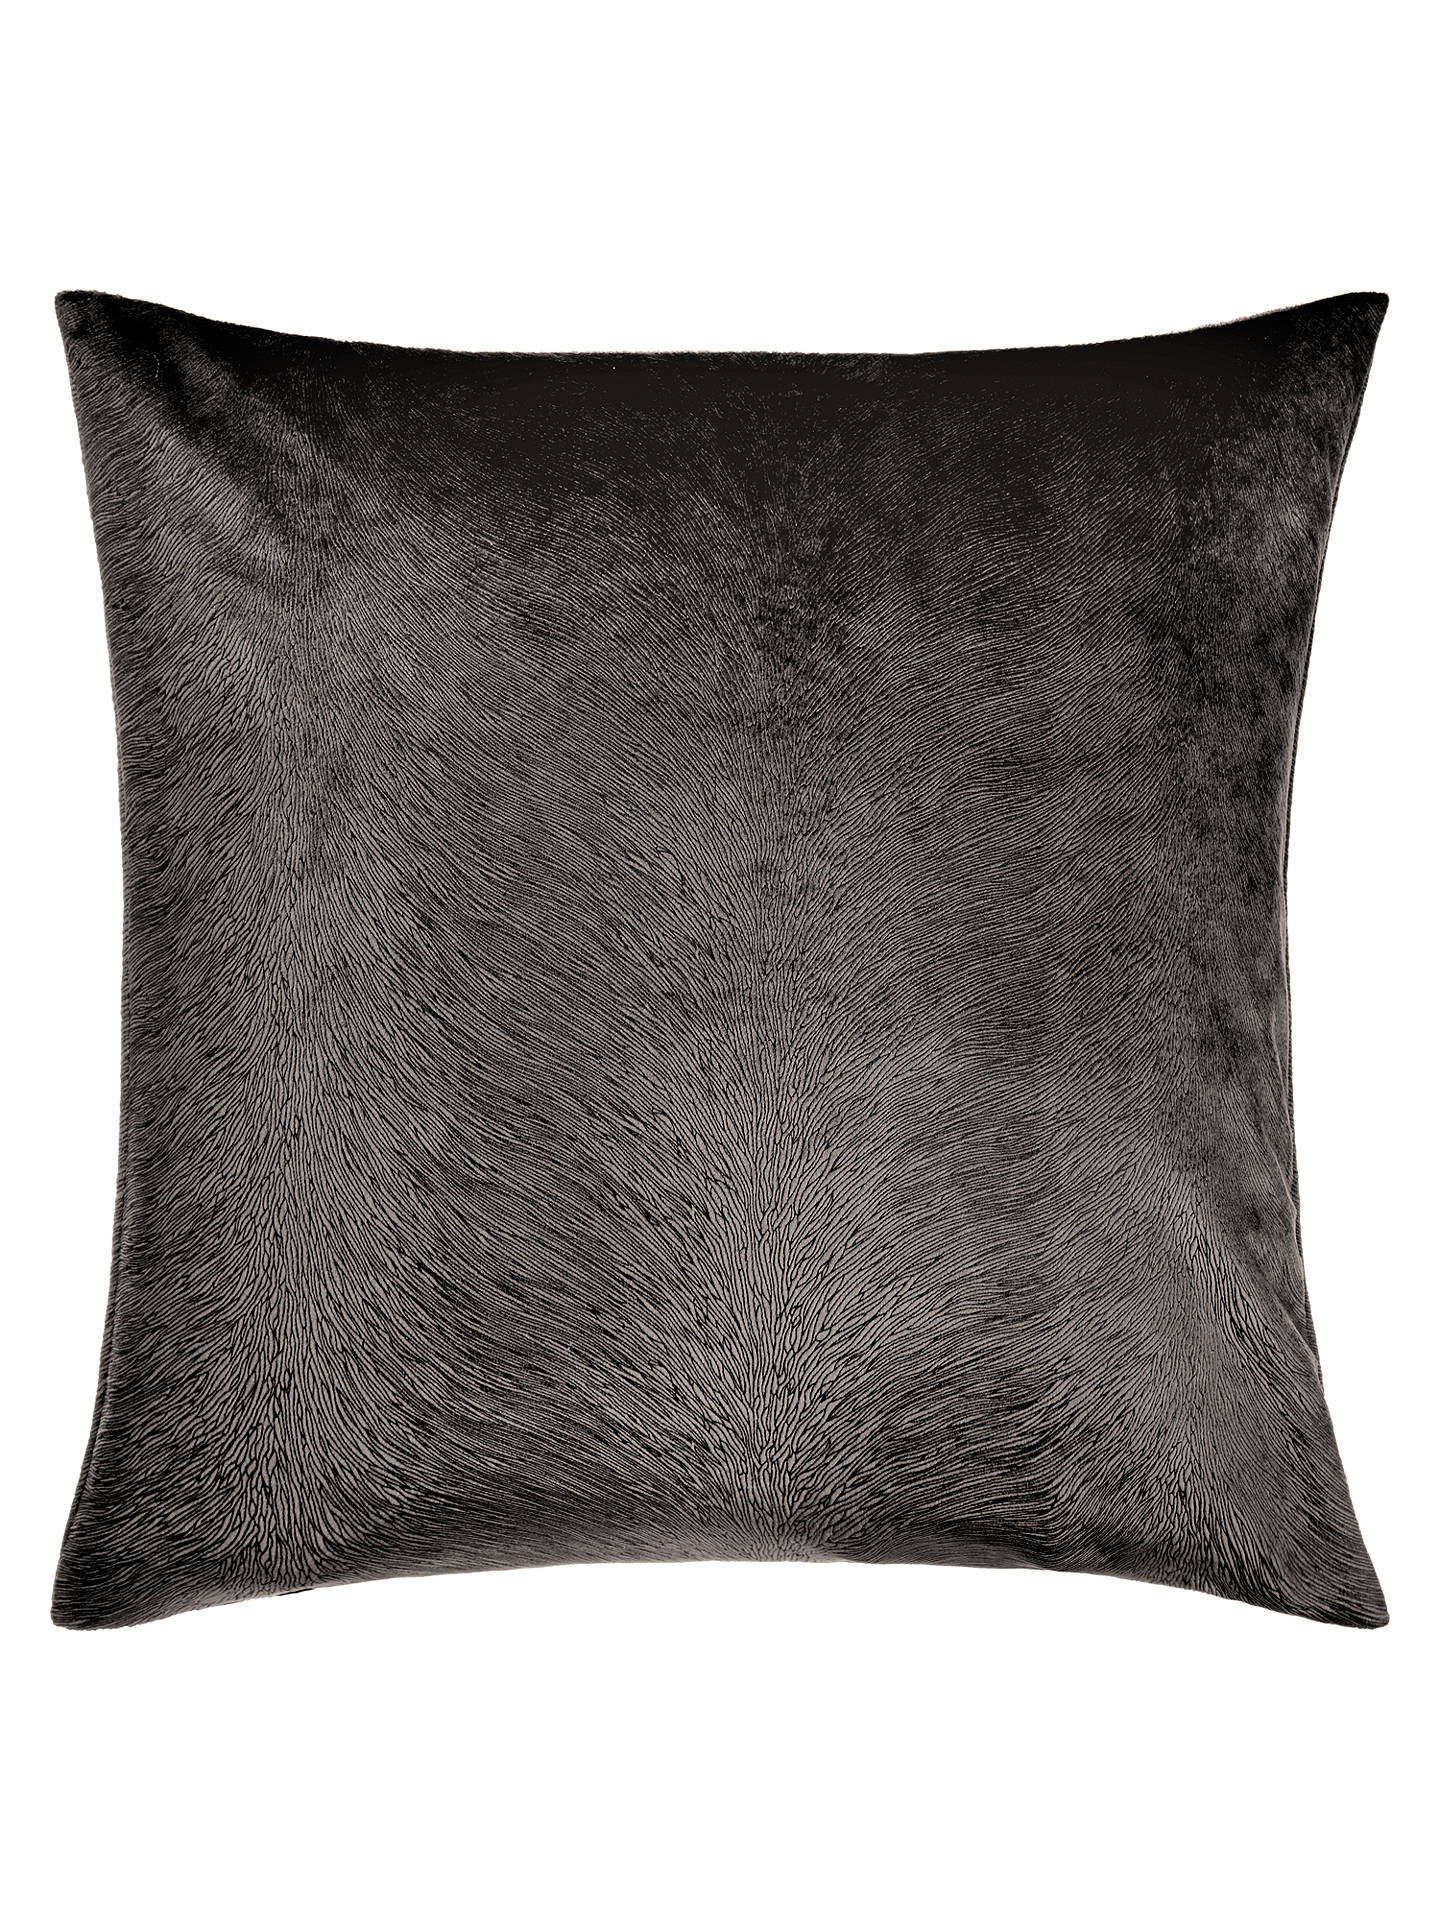 Buy John Lewis & Partners Italian Cut Velvet Square Cushion, Mole Online at johnlewis.com